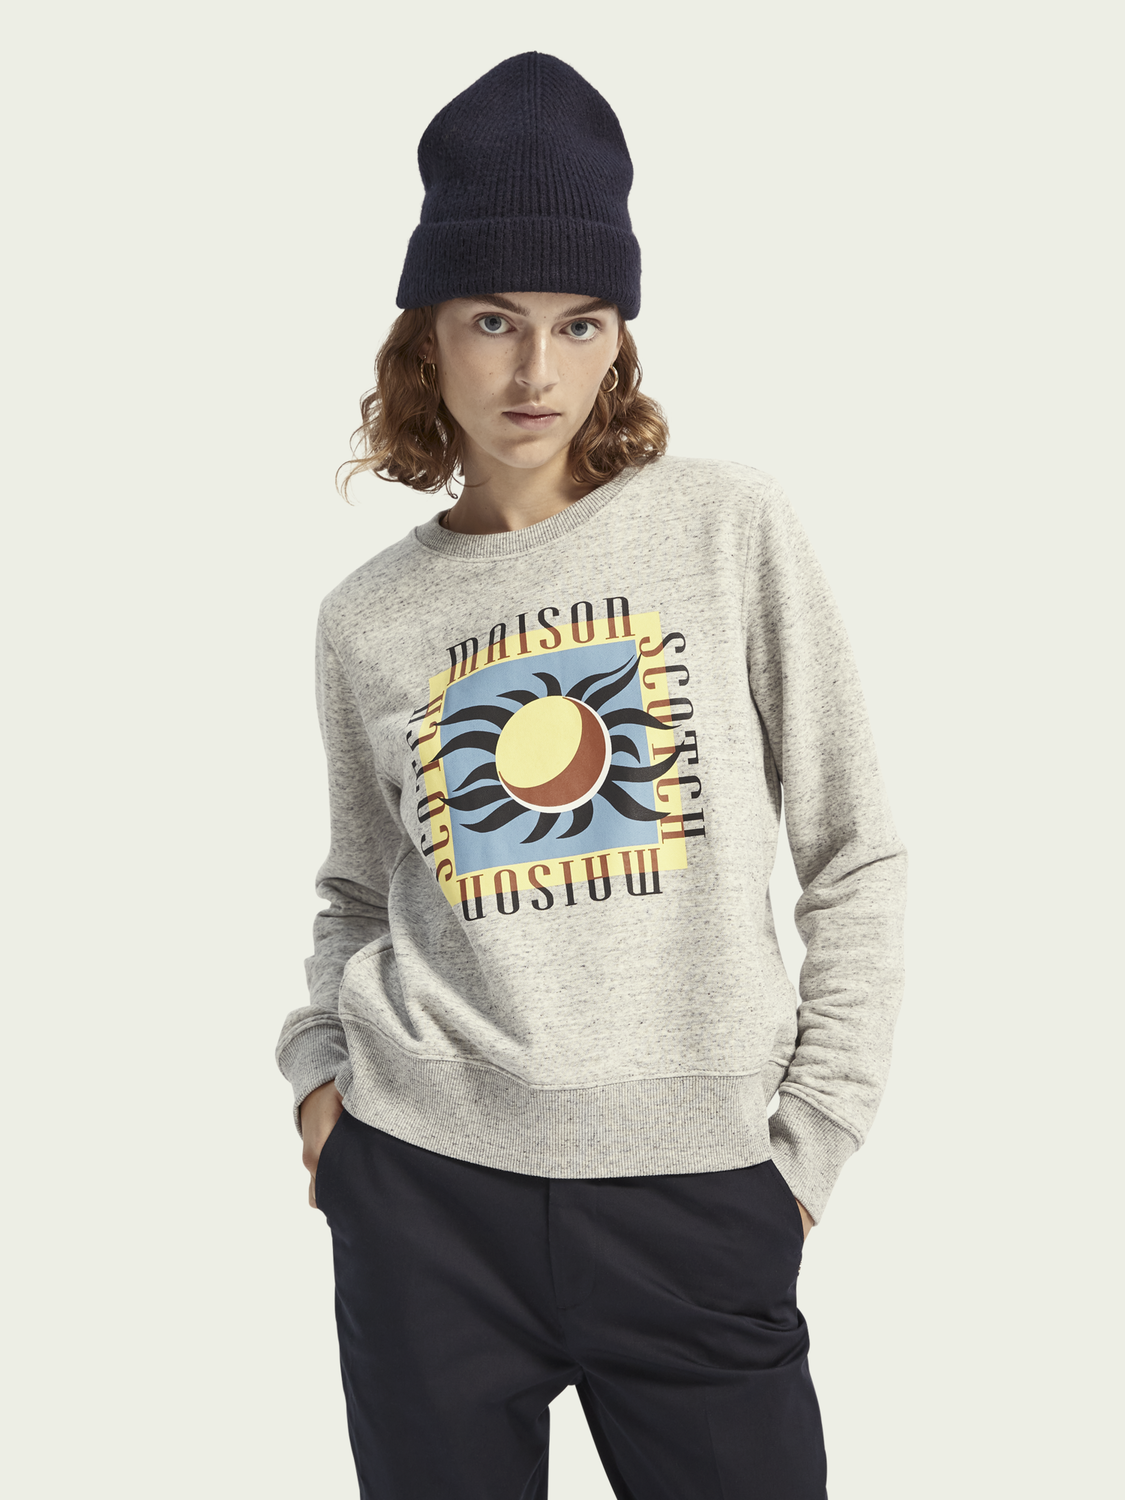 Regular Fit Cotton Blend Sweatshirt Sweatshirts Scotch Soda Fitting into all sorts of financial stature, these regular fit jeans for women are something that your closet is dying to have now. regular fit cotton blend sweatshirt